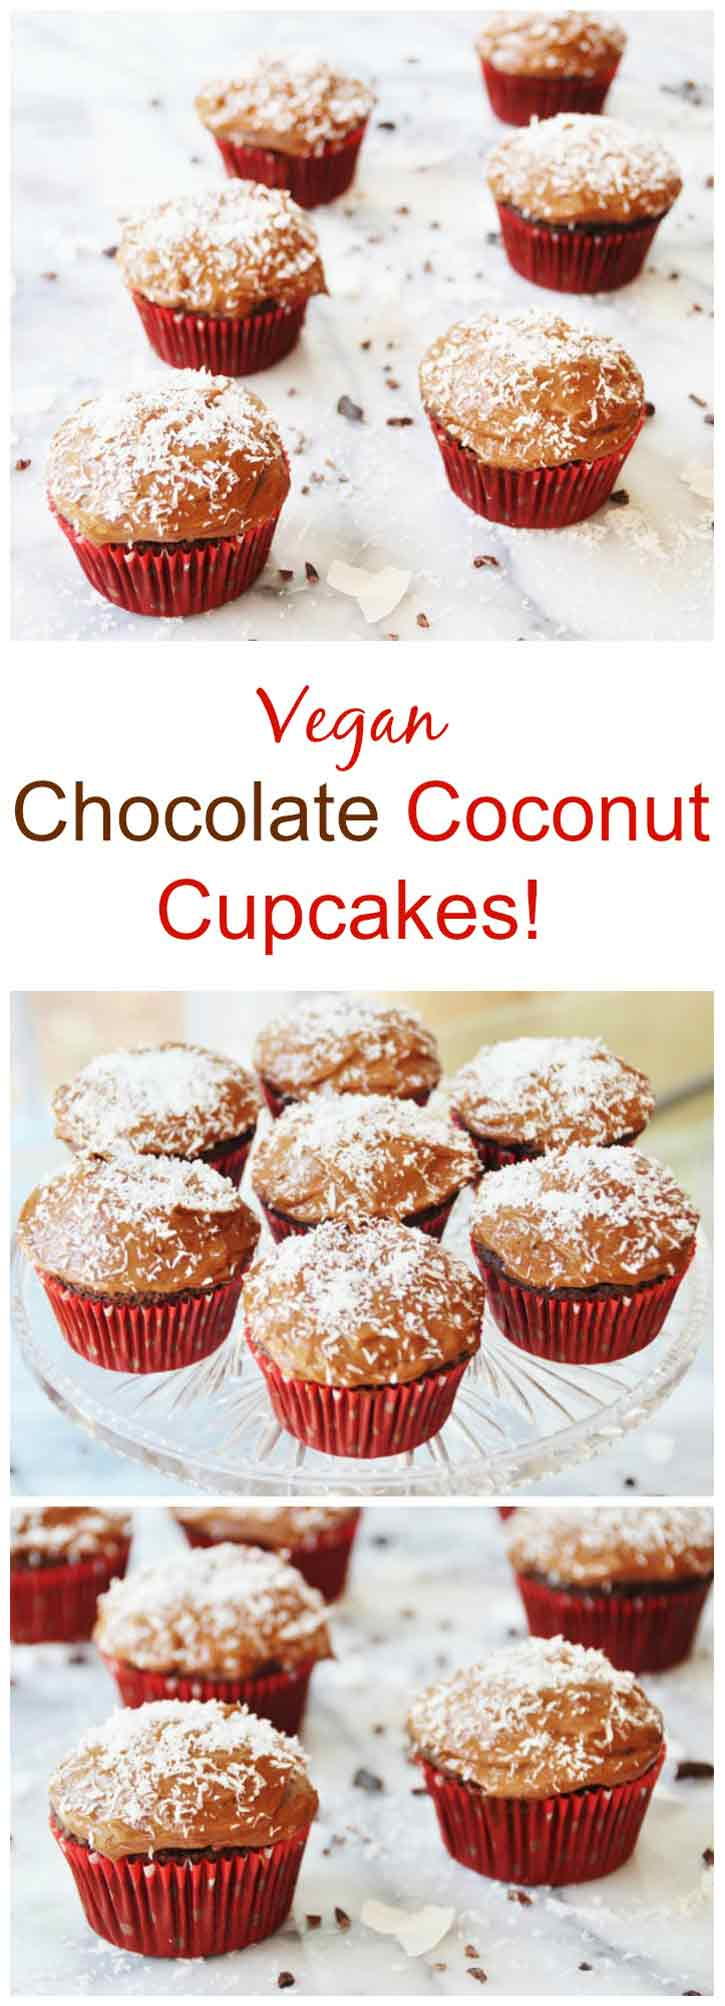 Vegan Chocolate Coconut Cupcakes! So tender and light with a creamy rich chocolate coconut frosting. www.veganosity.com